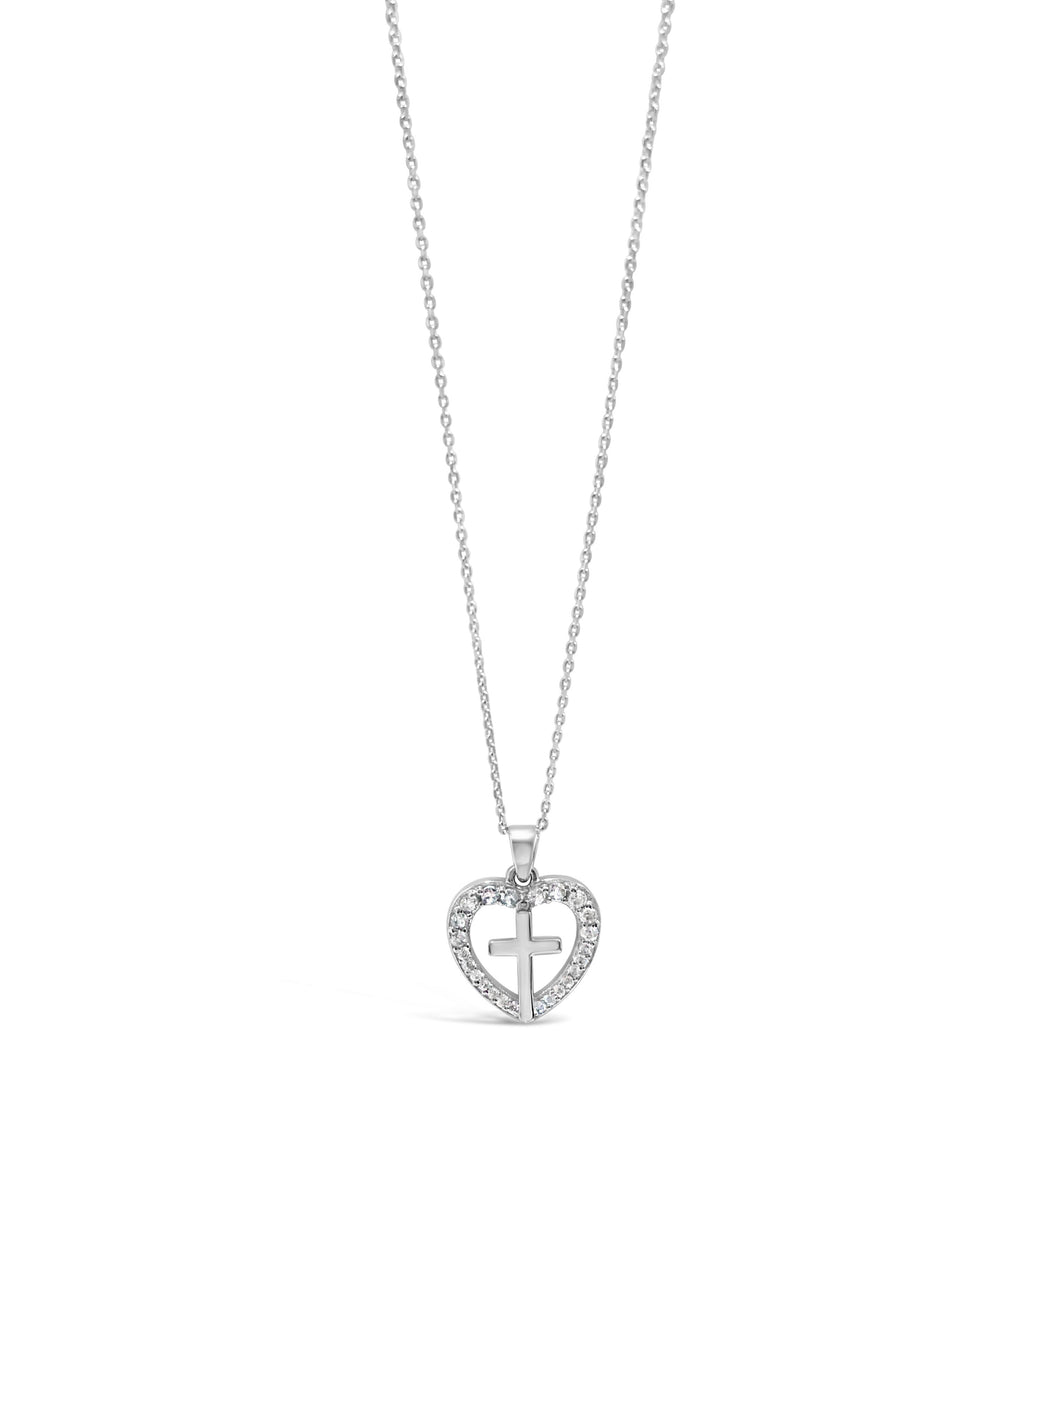 Absolute Jewellery Diamante Heart & Cross Necklace HCP200